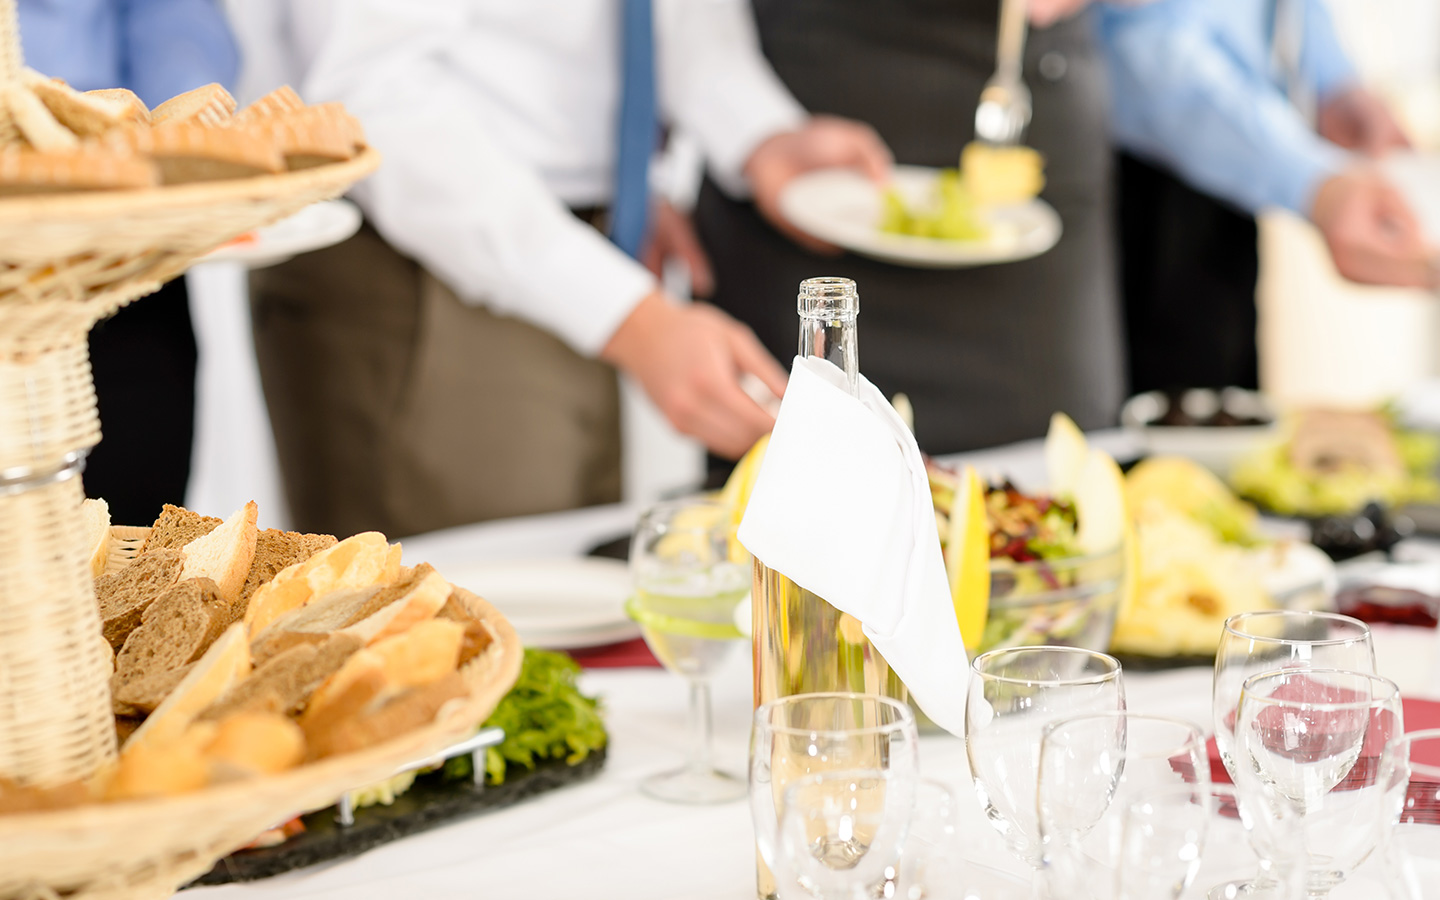 Tips on how to choose the right catering services